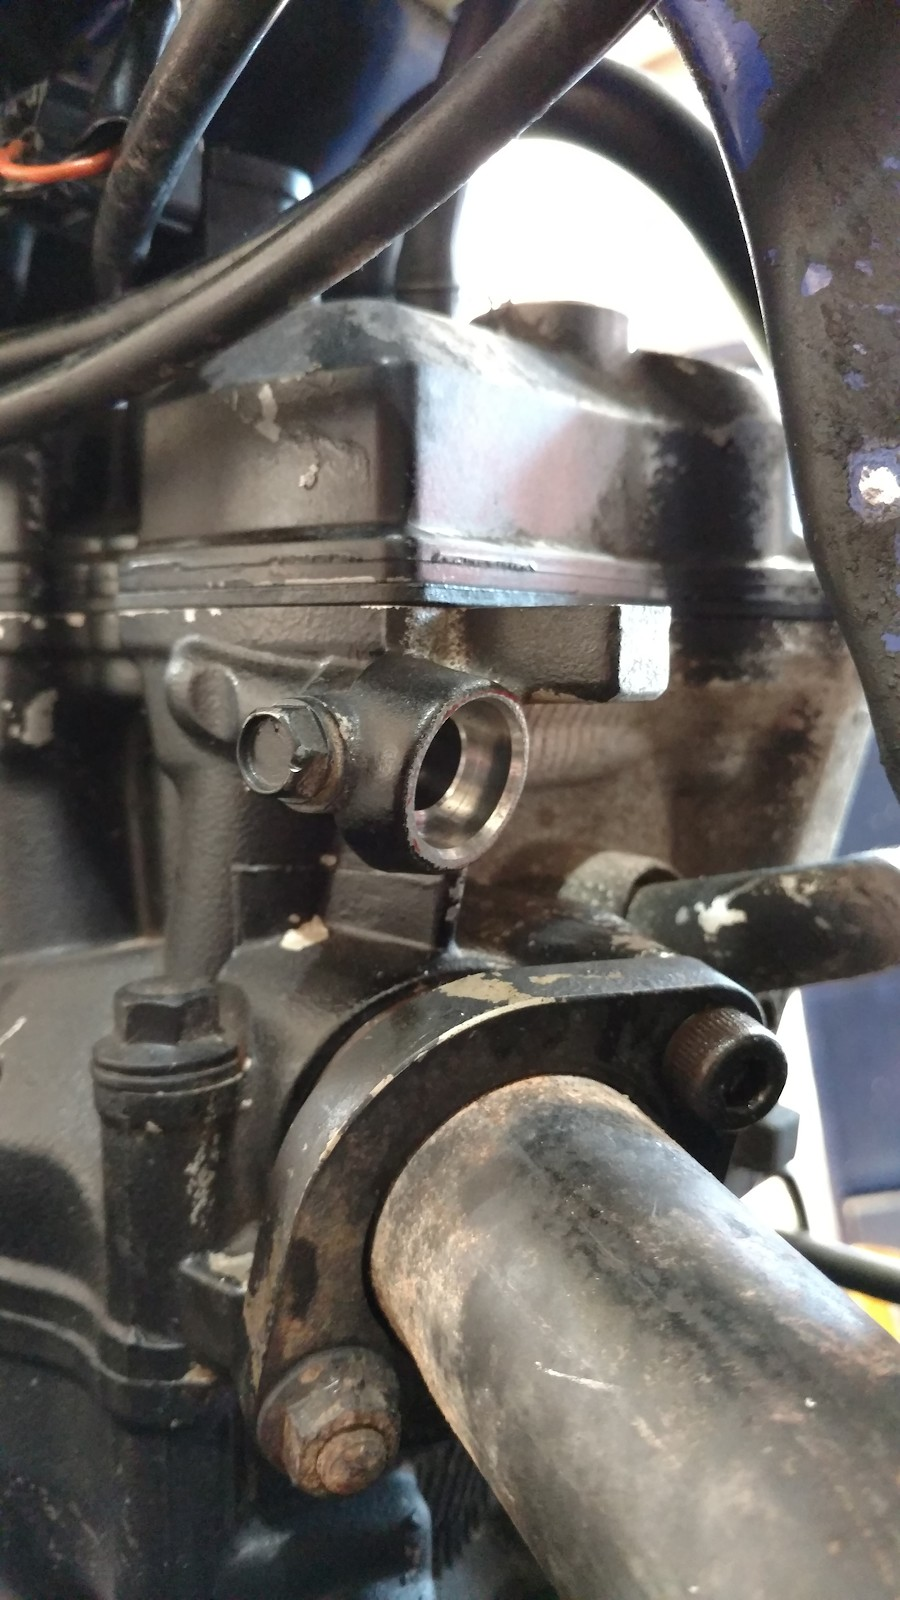 So while looking at my bike I noticed this little thing sticking out of the  engine, what is it?